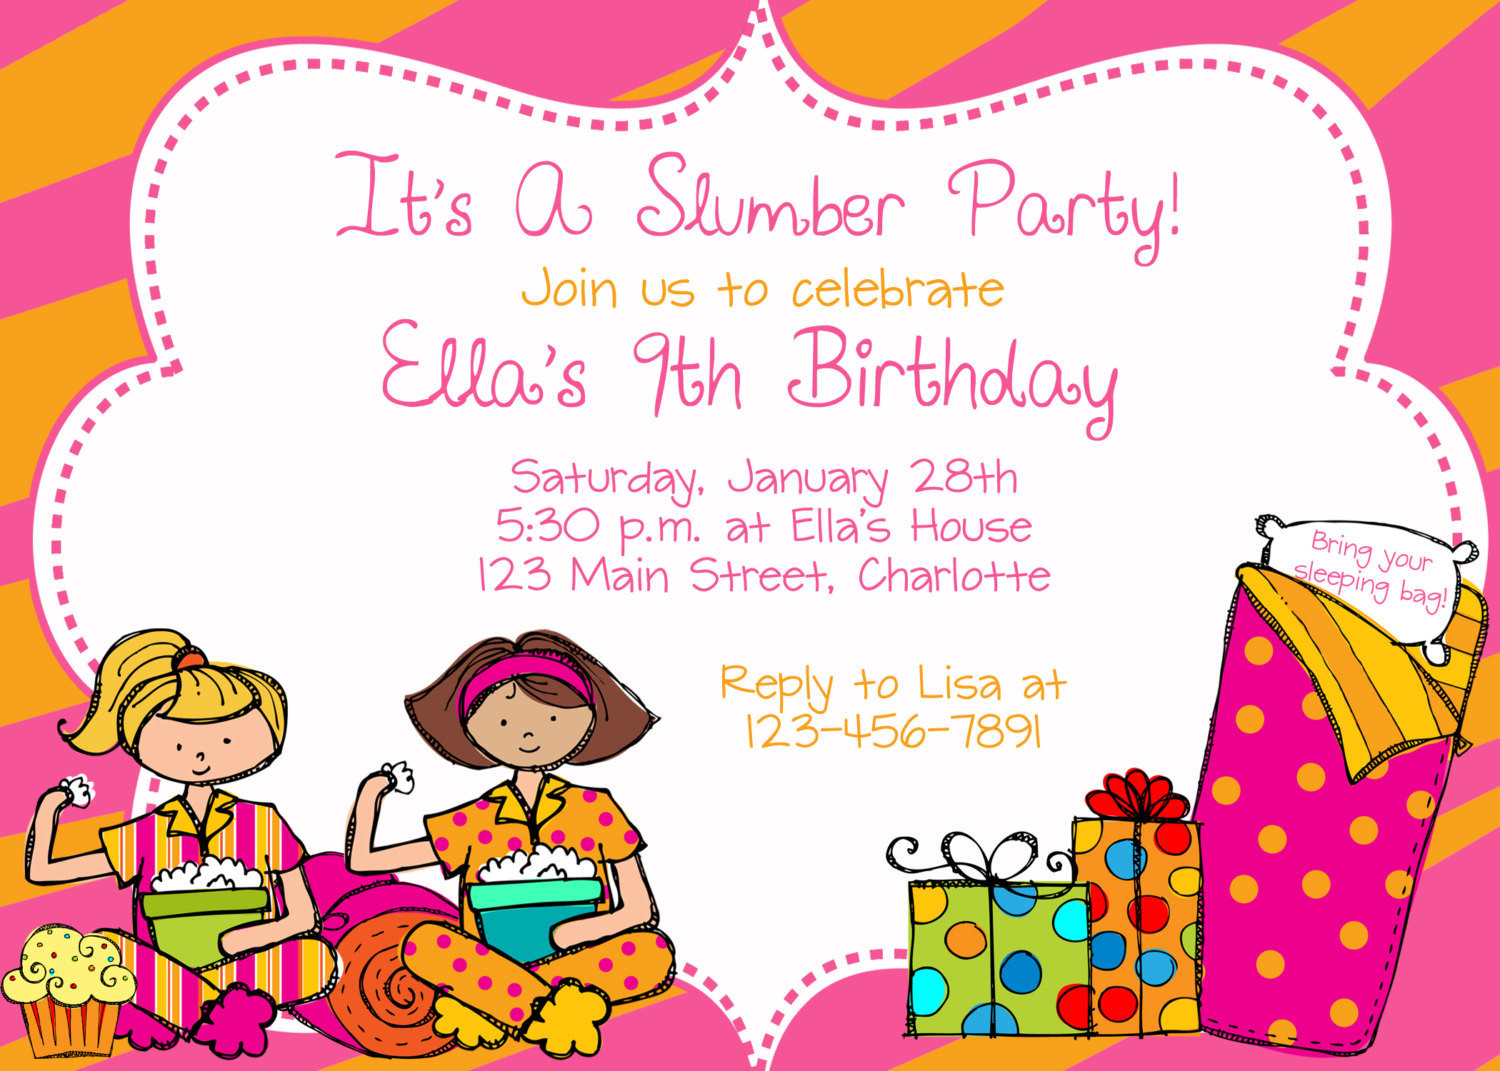 Best ideas about Sleepover Birthday Party . Save or Pin Slumber party birthday party invitation slumber party Now.